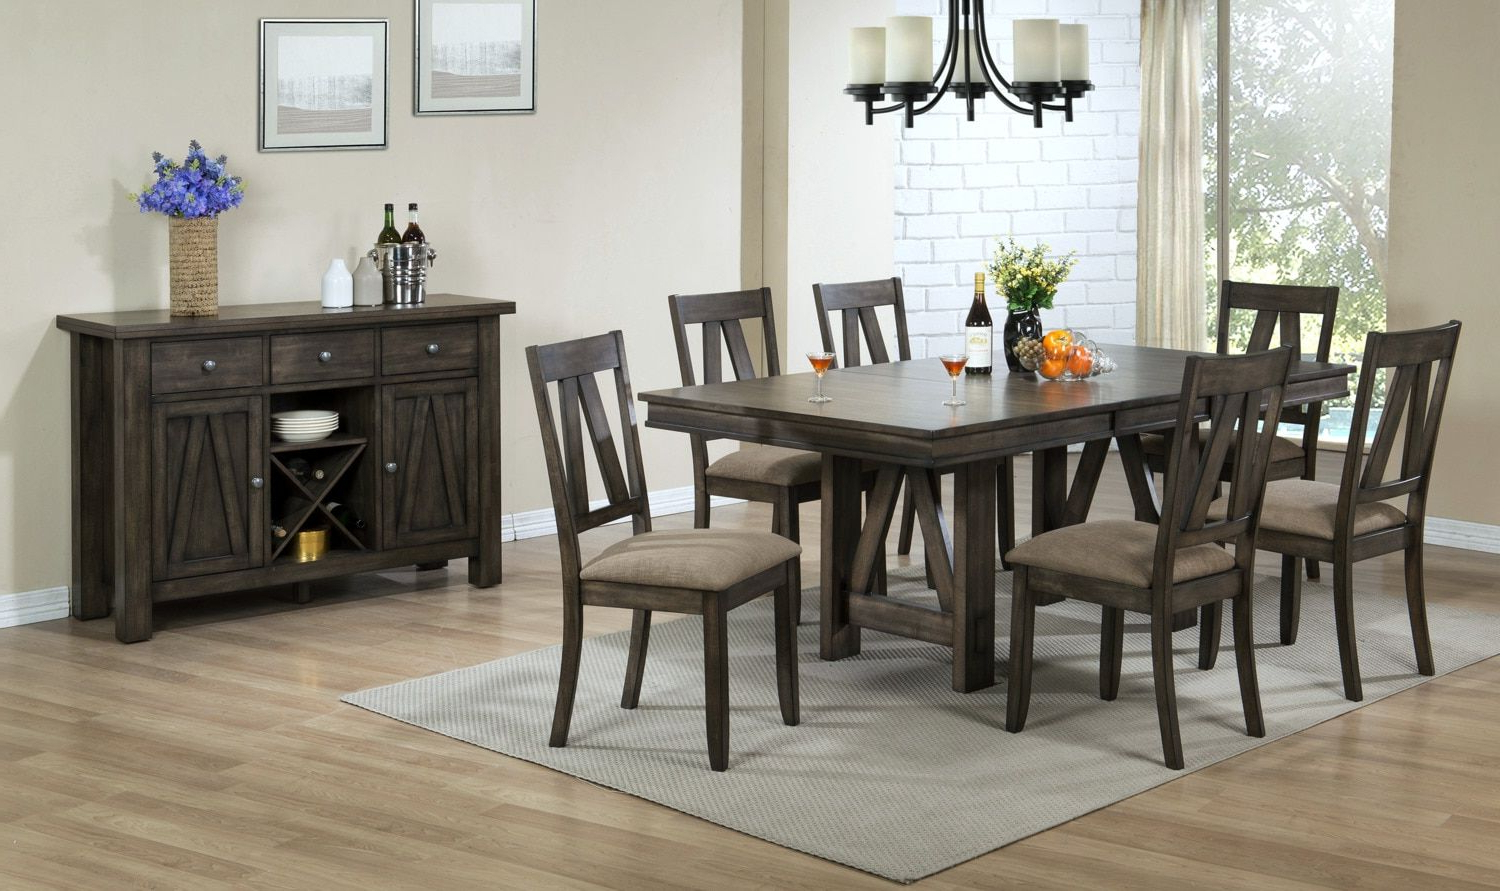 Thompson 7 Piece Dining Room Set – Espresso (View 3 of 17)